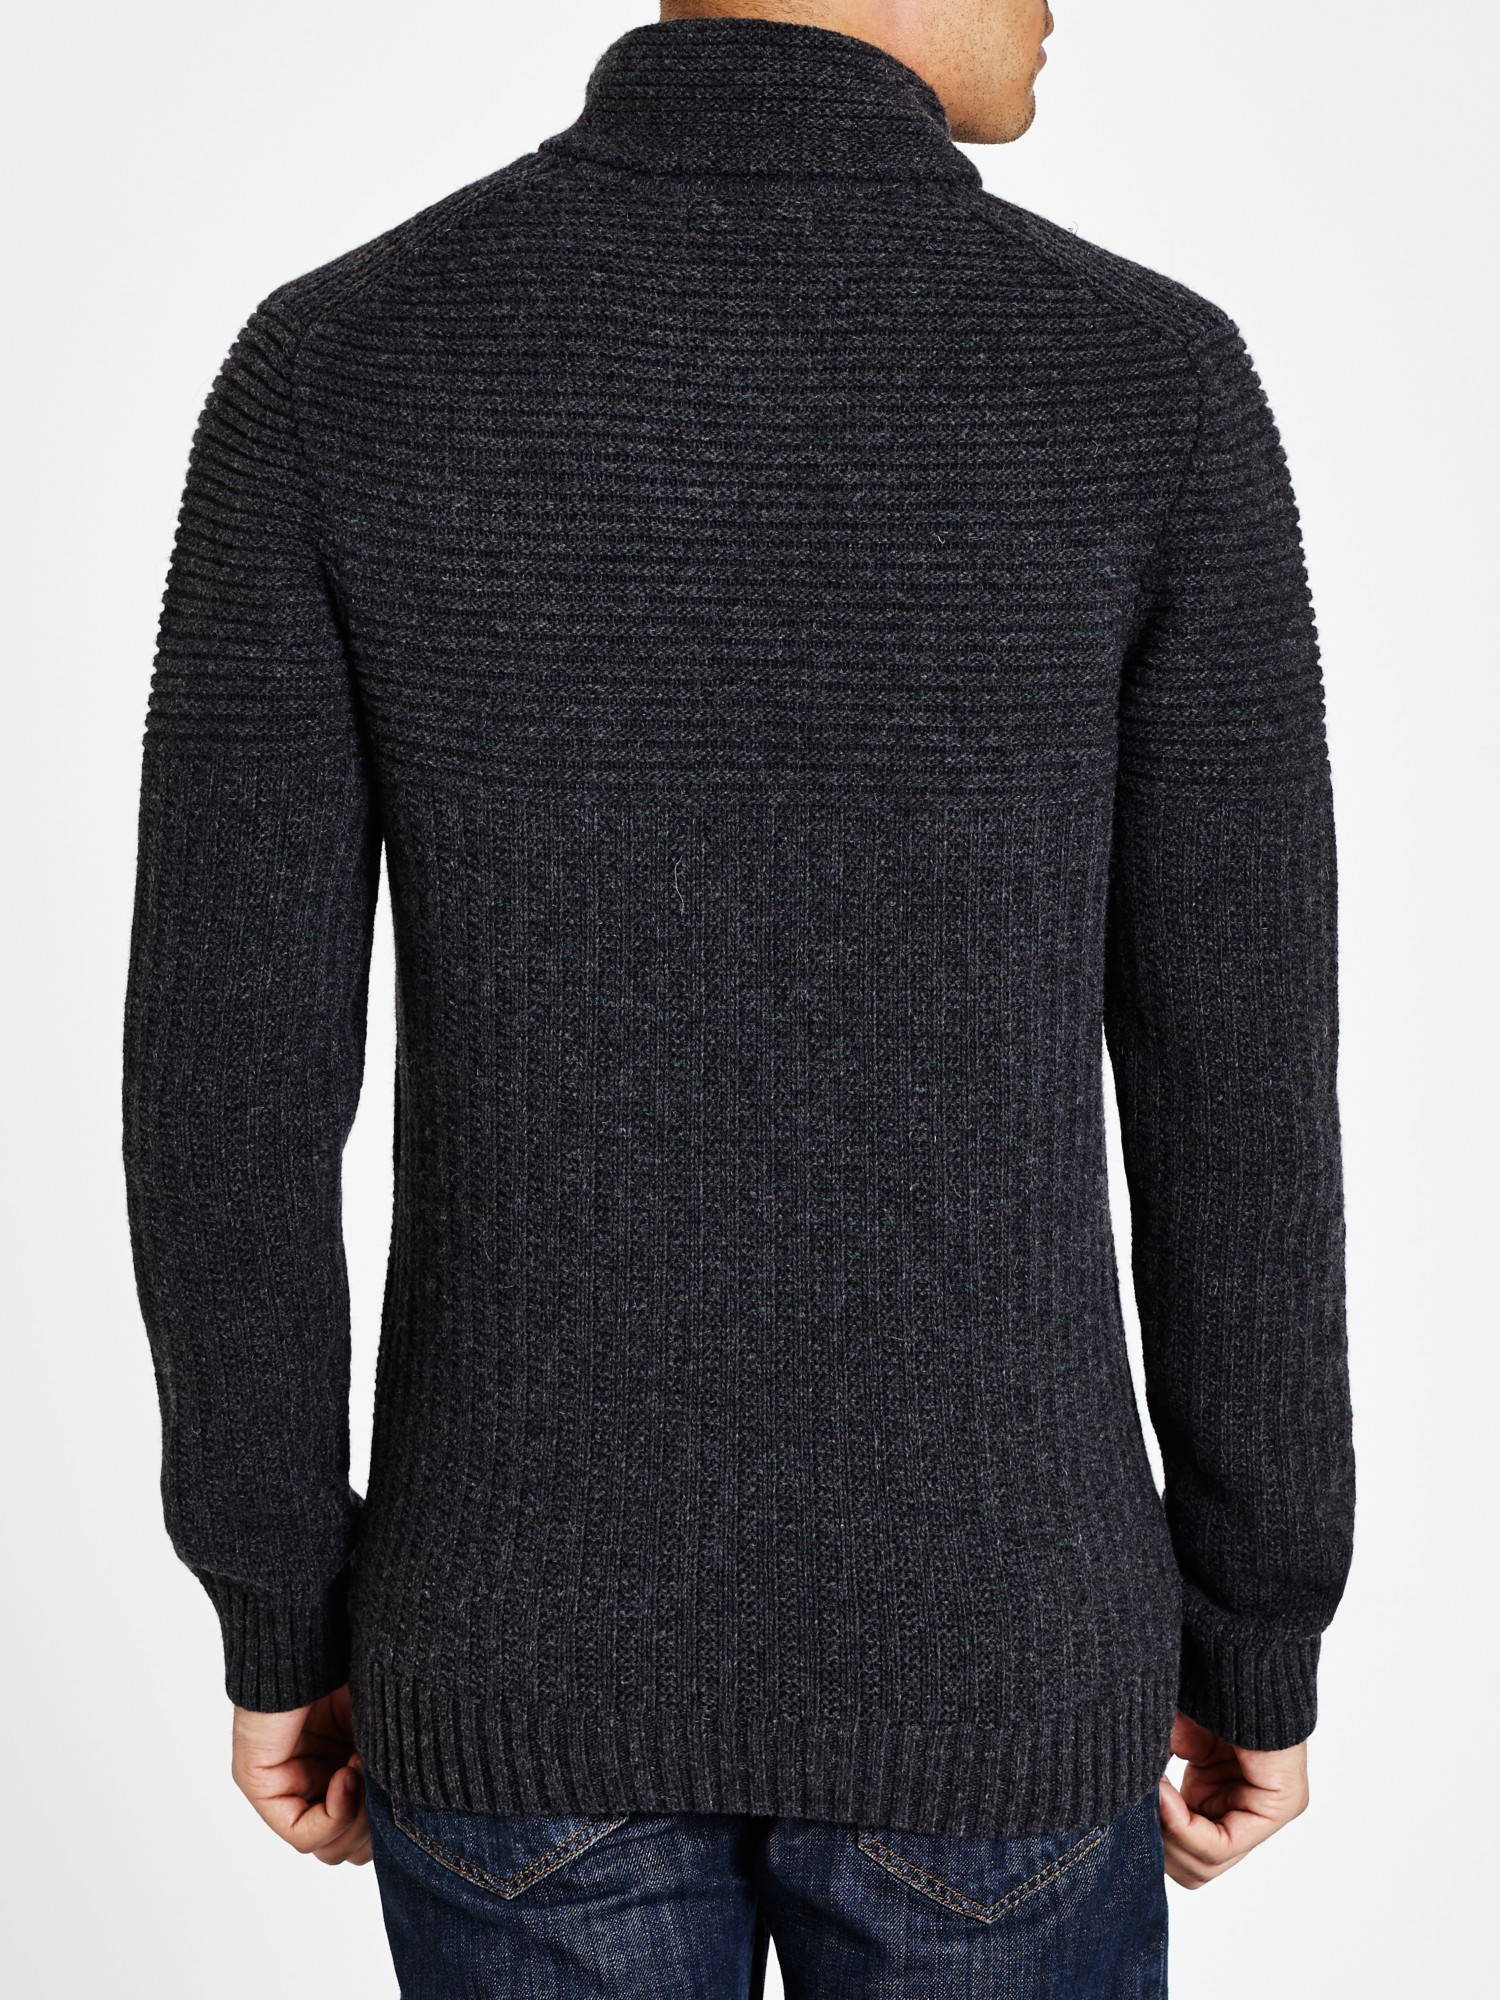 Lyle & Scott Wool Lyle  Scot Shawl Collar Jumper in Charcoal (Grey) for Men